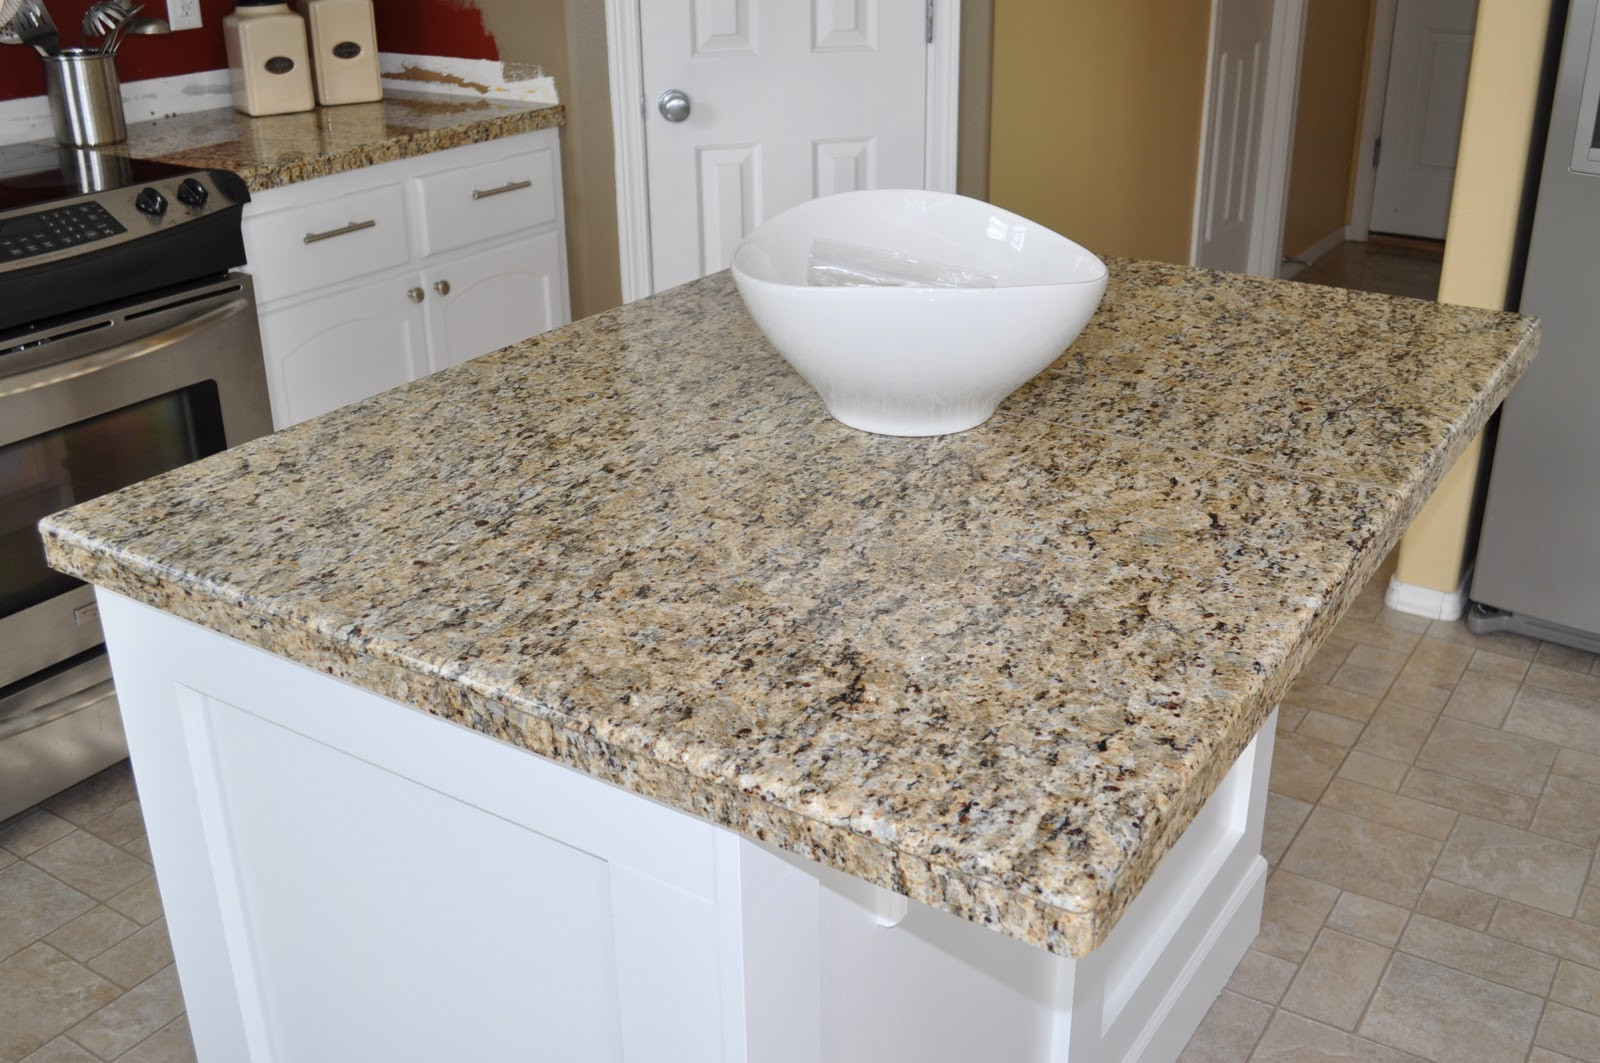 Best ideas about DIY Tile Countertops . Save or Pin The Dizzy House DIY Granite Mini Slabs Undermount Sink Now.